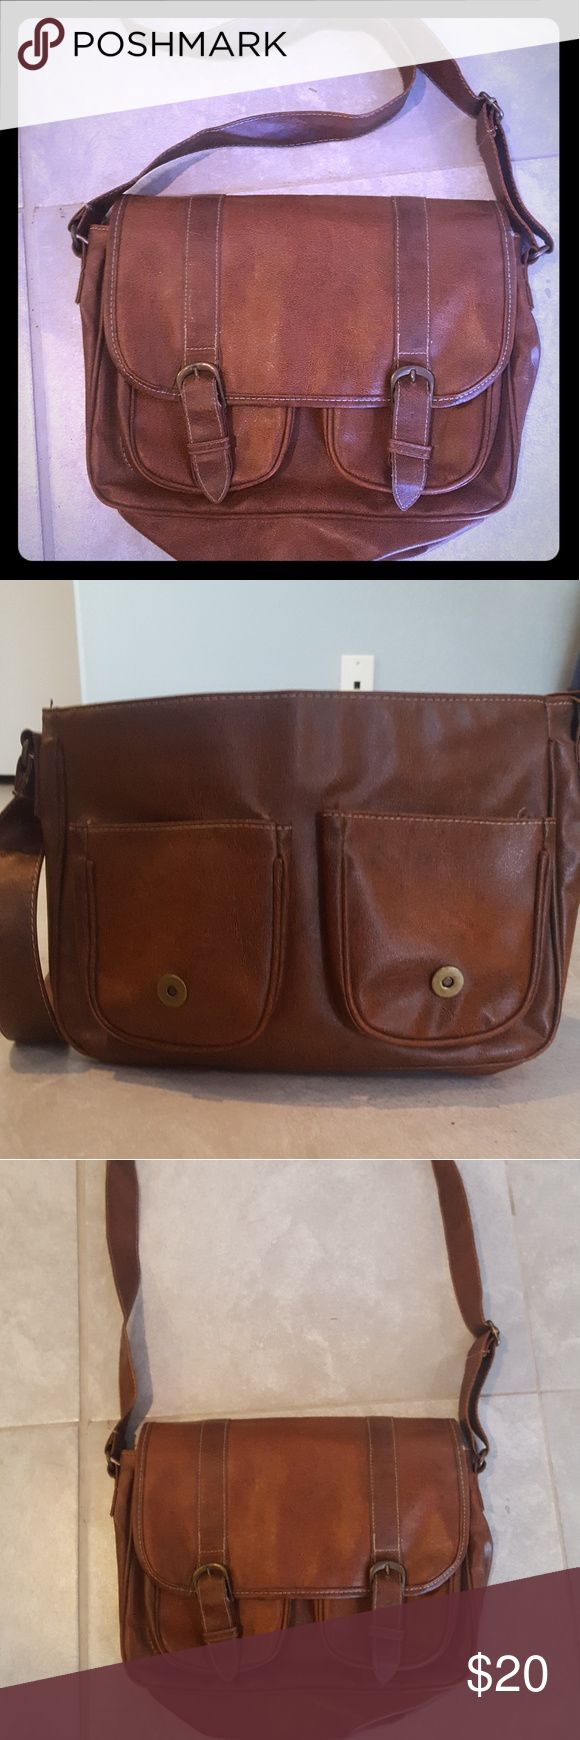 Brand New PiGi bag Never used over the shoulder, brown PiGi bag with multiple compartments. Perfect for small laptop or tablet. pigi Bags